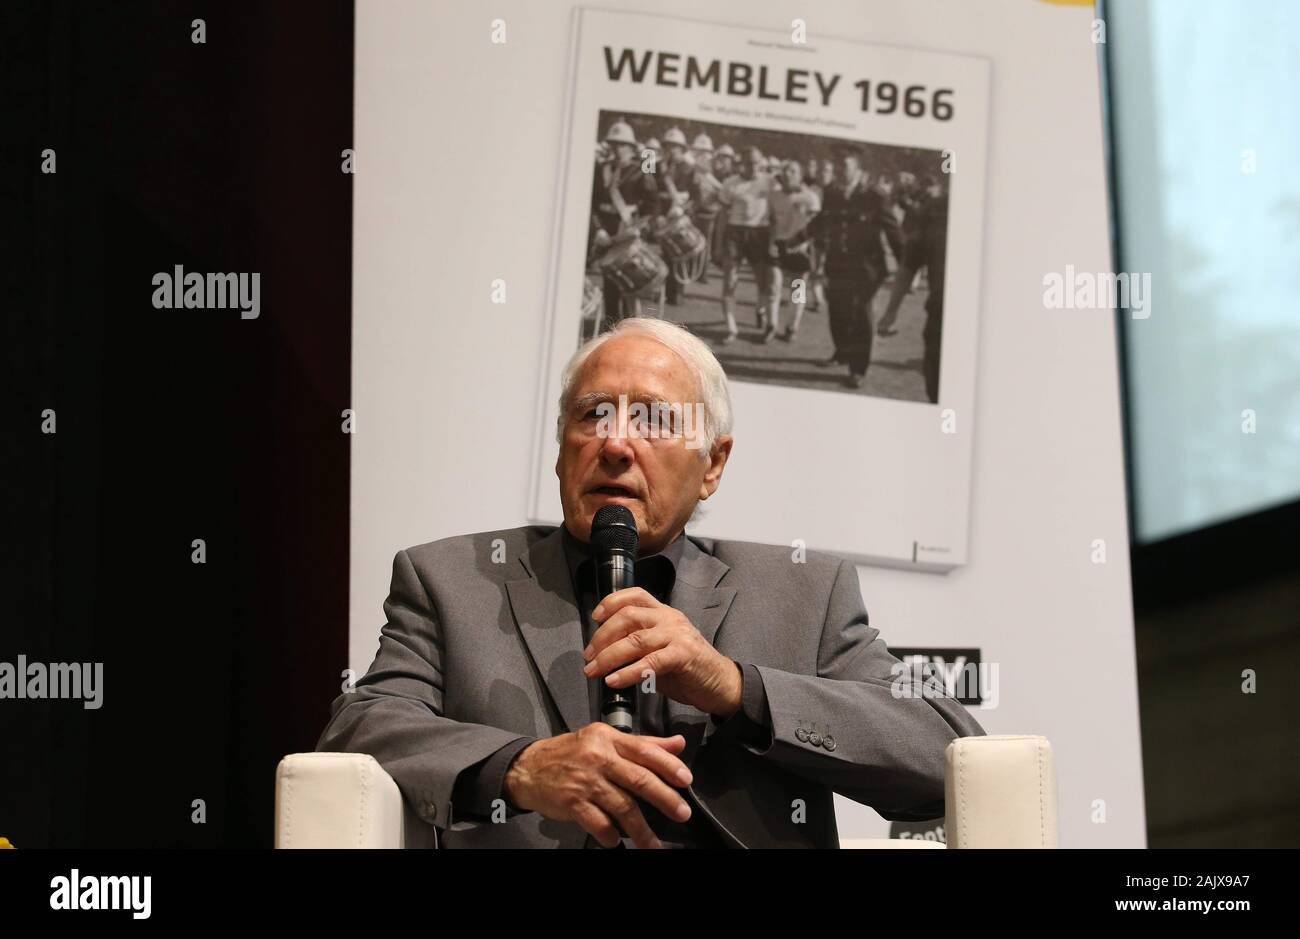 """firo: 07/31/2016 Football, Season German Football Museum DFM honors 50 years World Cup World Championship 1966 Vice with a special exhibition Hans Tilkowski The final of the 8th Football World Cup 1966 between England and Germany (4: 2 nV) has become a myth. The German Football Museum honored the unforgettable encounter with the legendary """"Wembley goal"""" for the anniversary with the special exhibition """"50 Years of Wembley - The Myth in Snapshots"""" (July 31, 2016 - January 15, 2017). Artistic media installations and partly unpublished photographs are shown.   usage worldwide Stock Photo"""